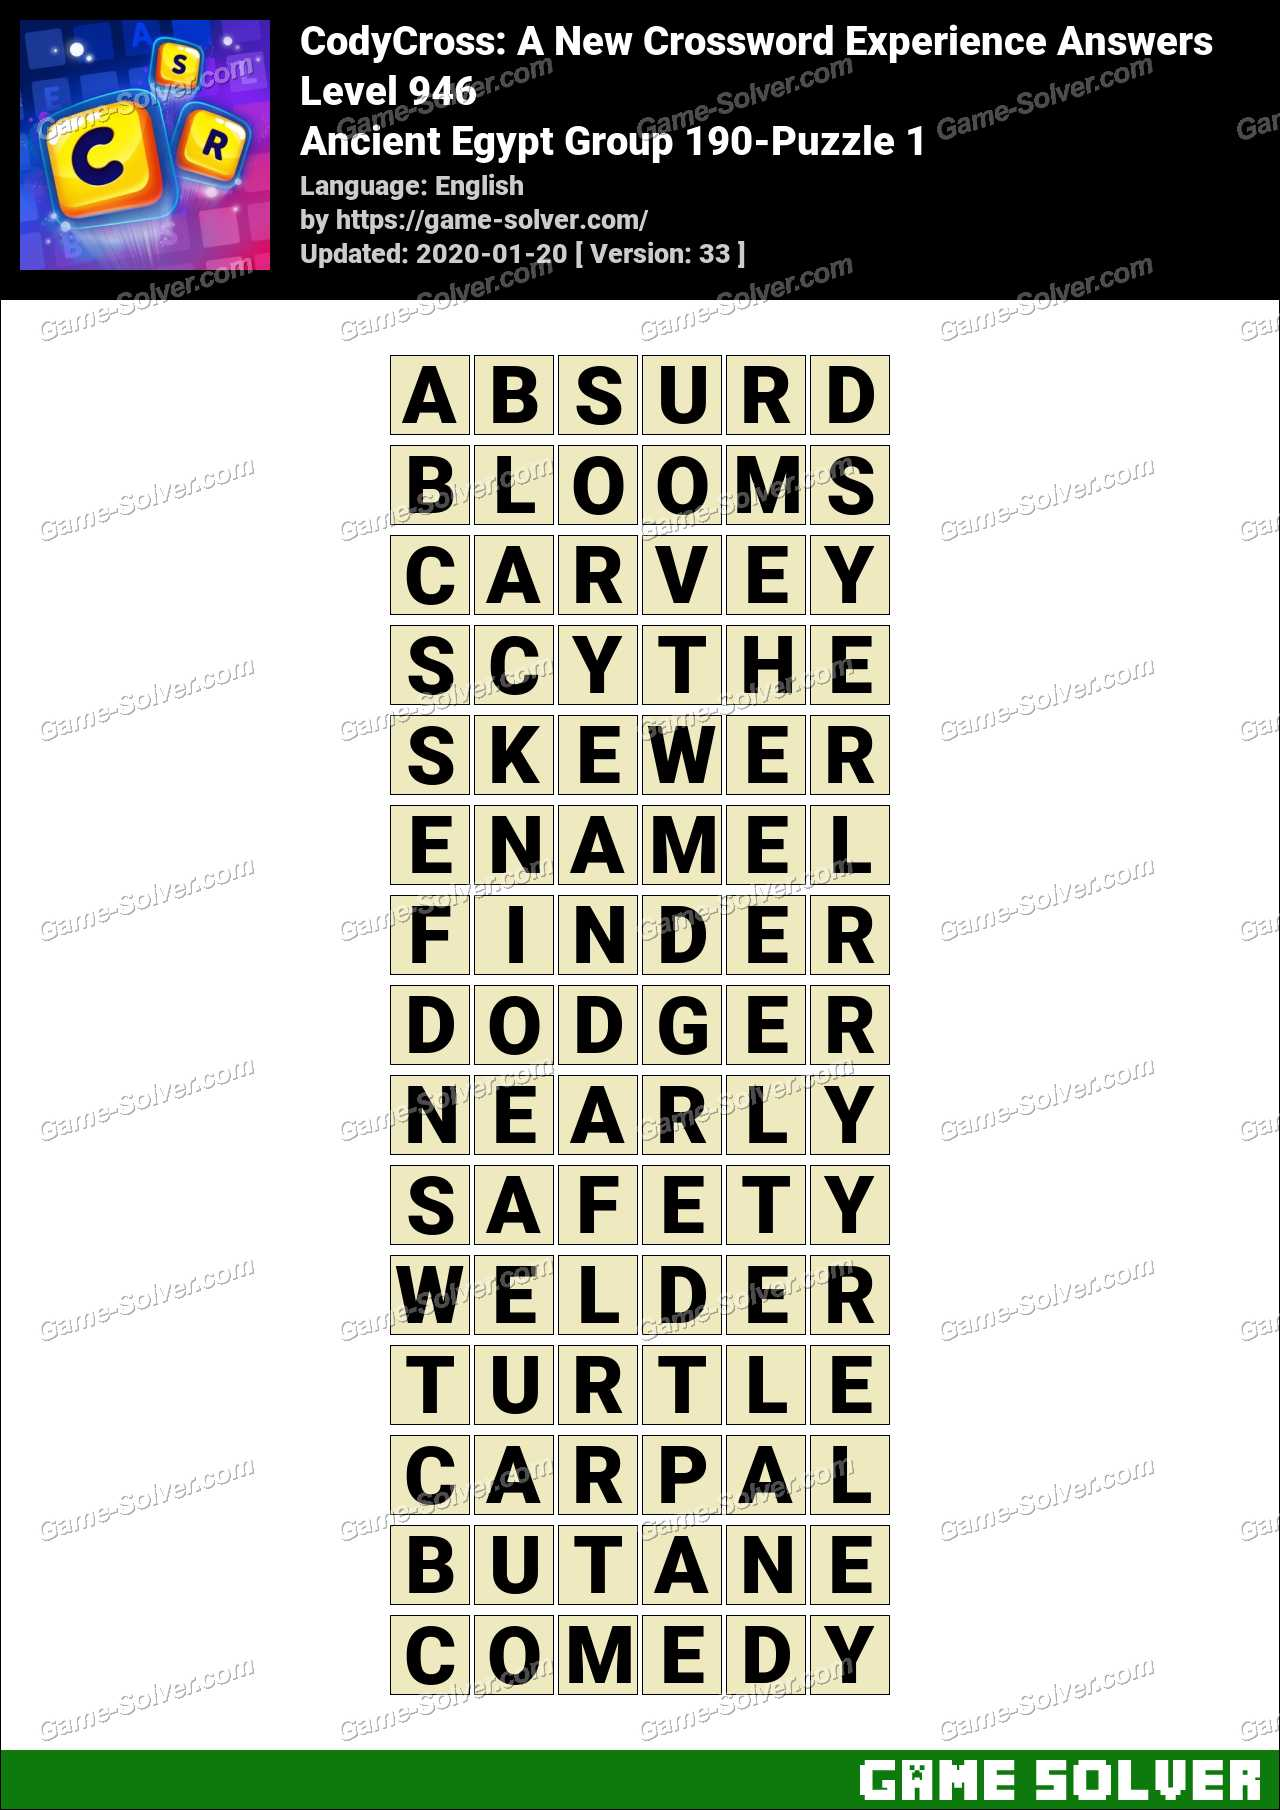 CodyCross Ancient Egypt Group 190-Puzzle 1 Answers